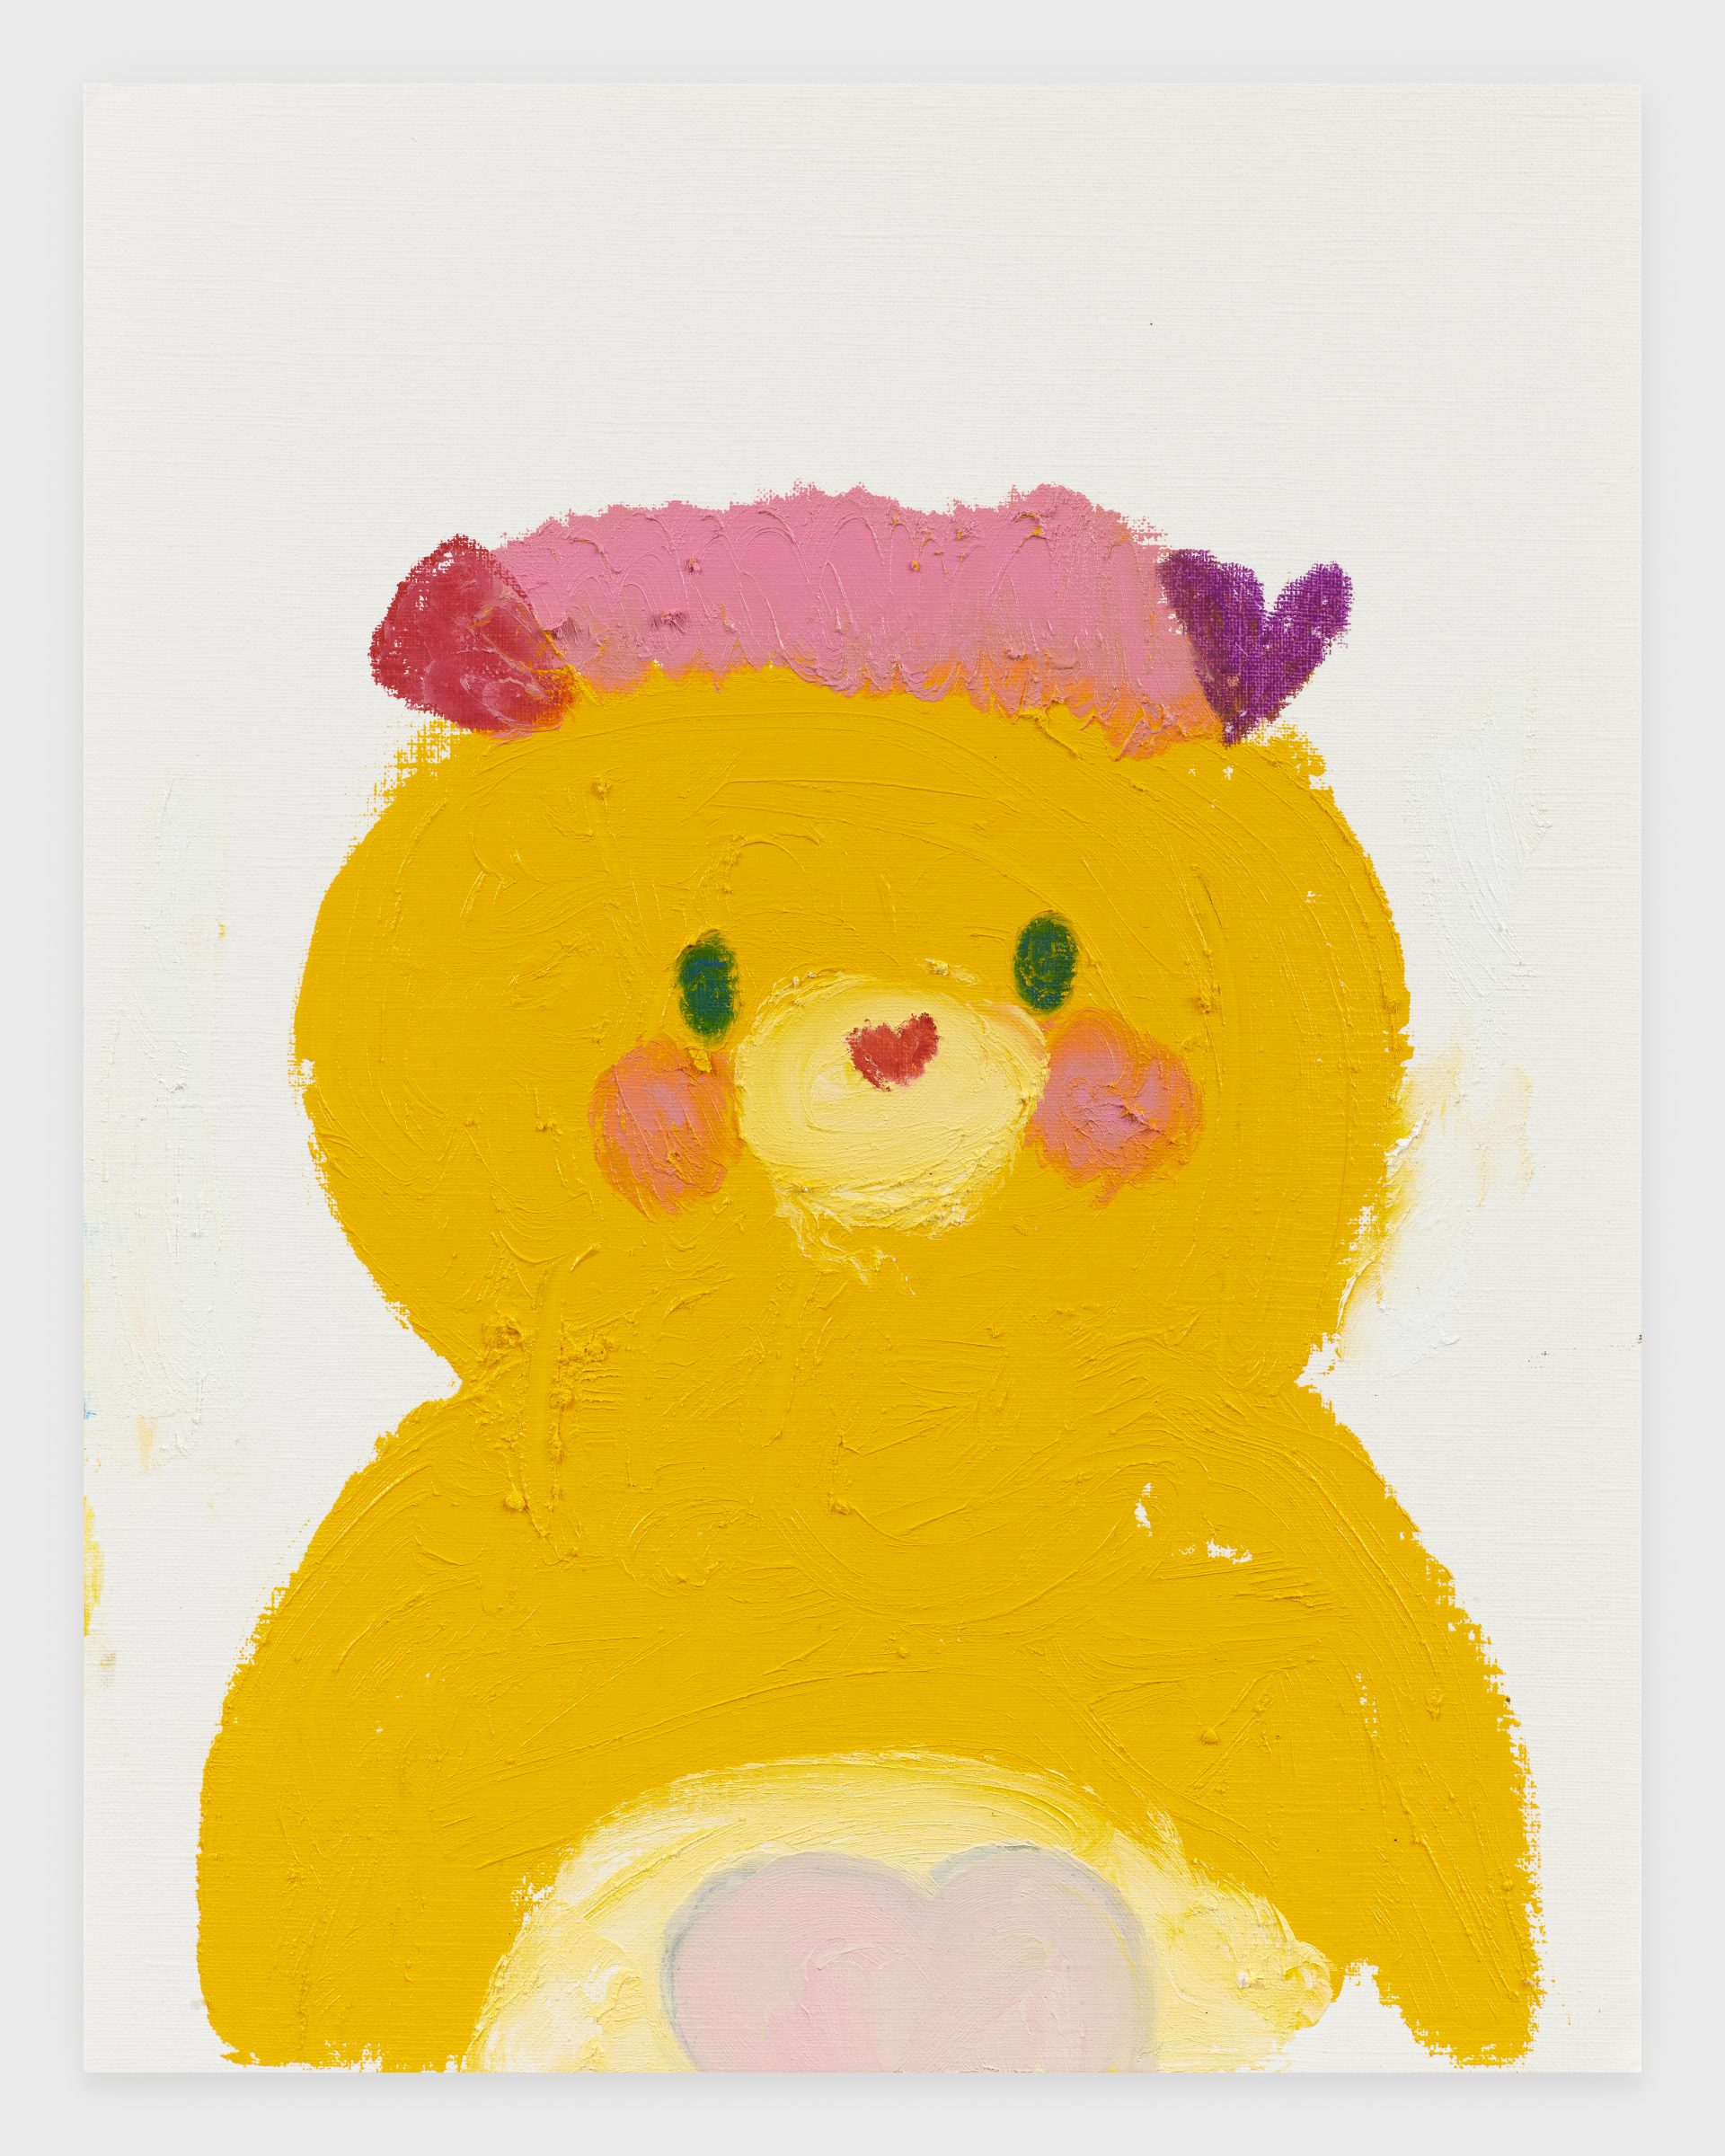 Popple (Potato Chip), 2020, Oil stick on archival paper, 11 x 14 inches